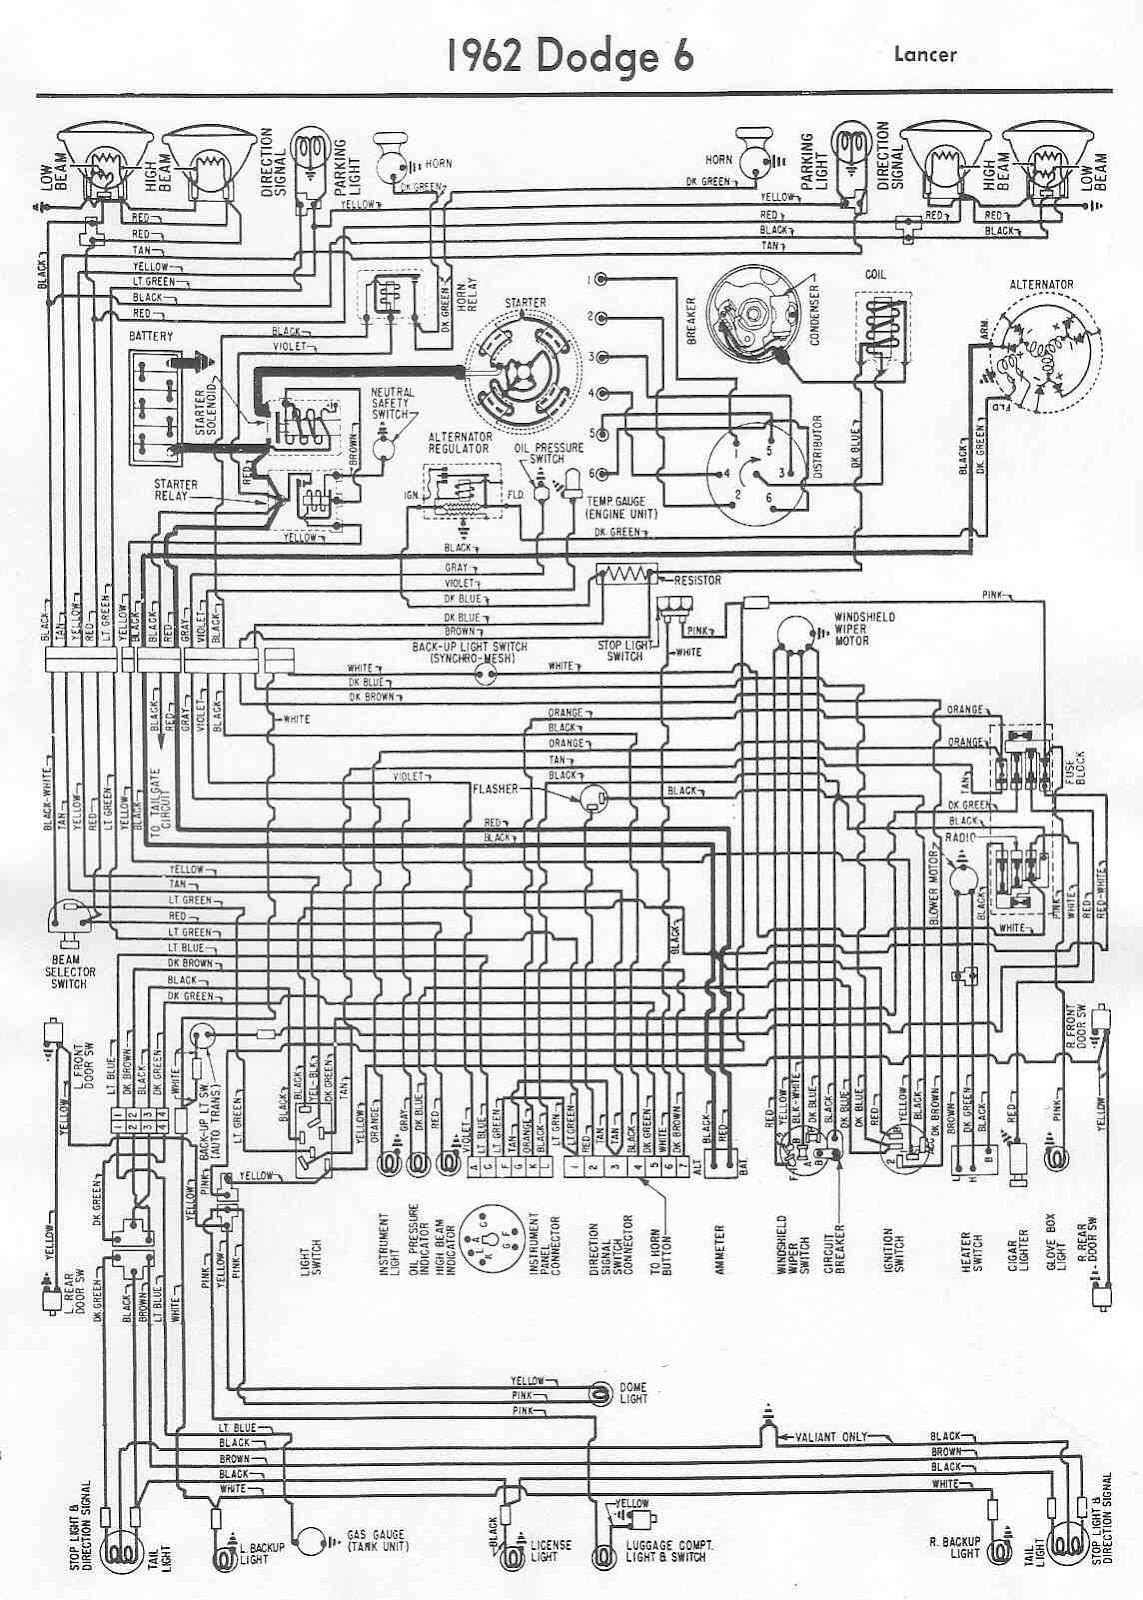 Mitsubishi Mirage Stereo Wiring Diagram 2002 Eclipse Speaker 2000